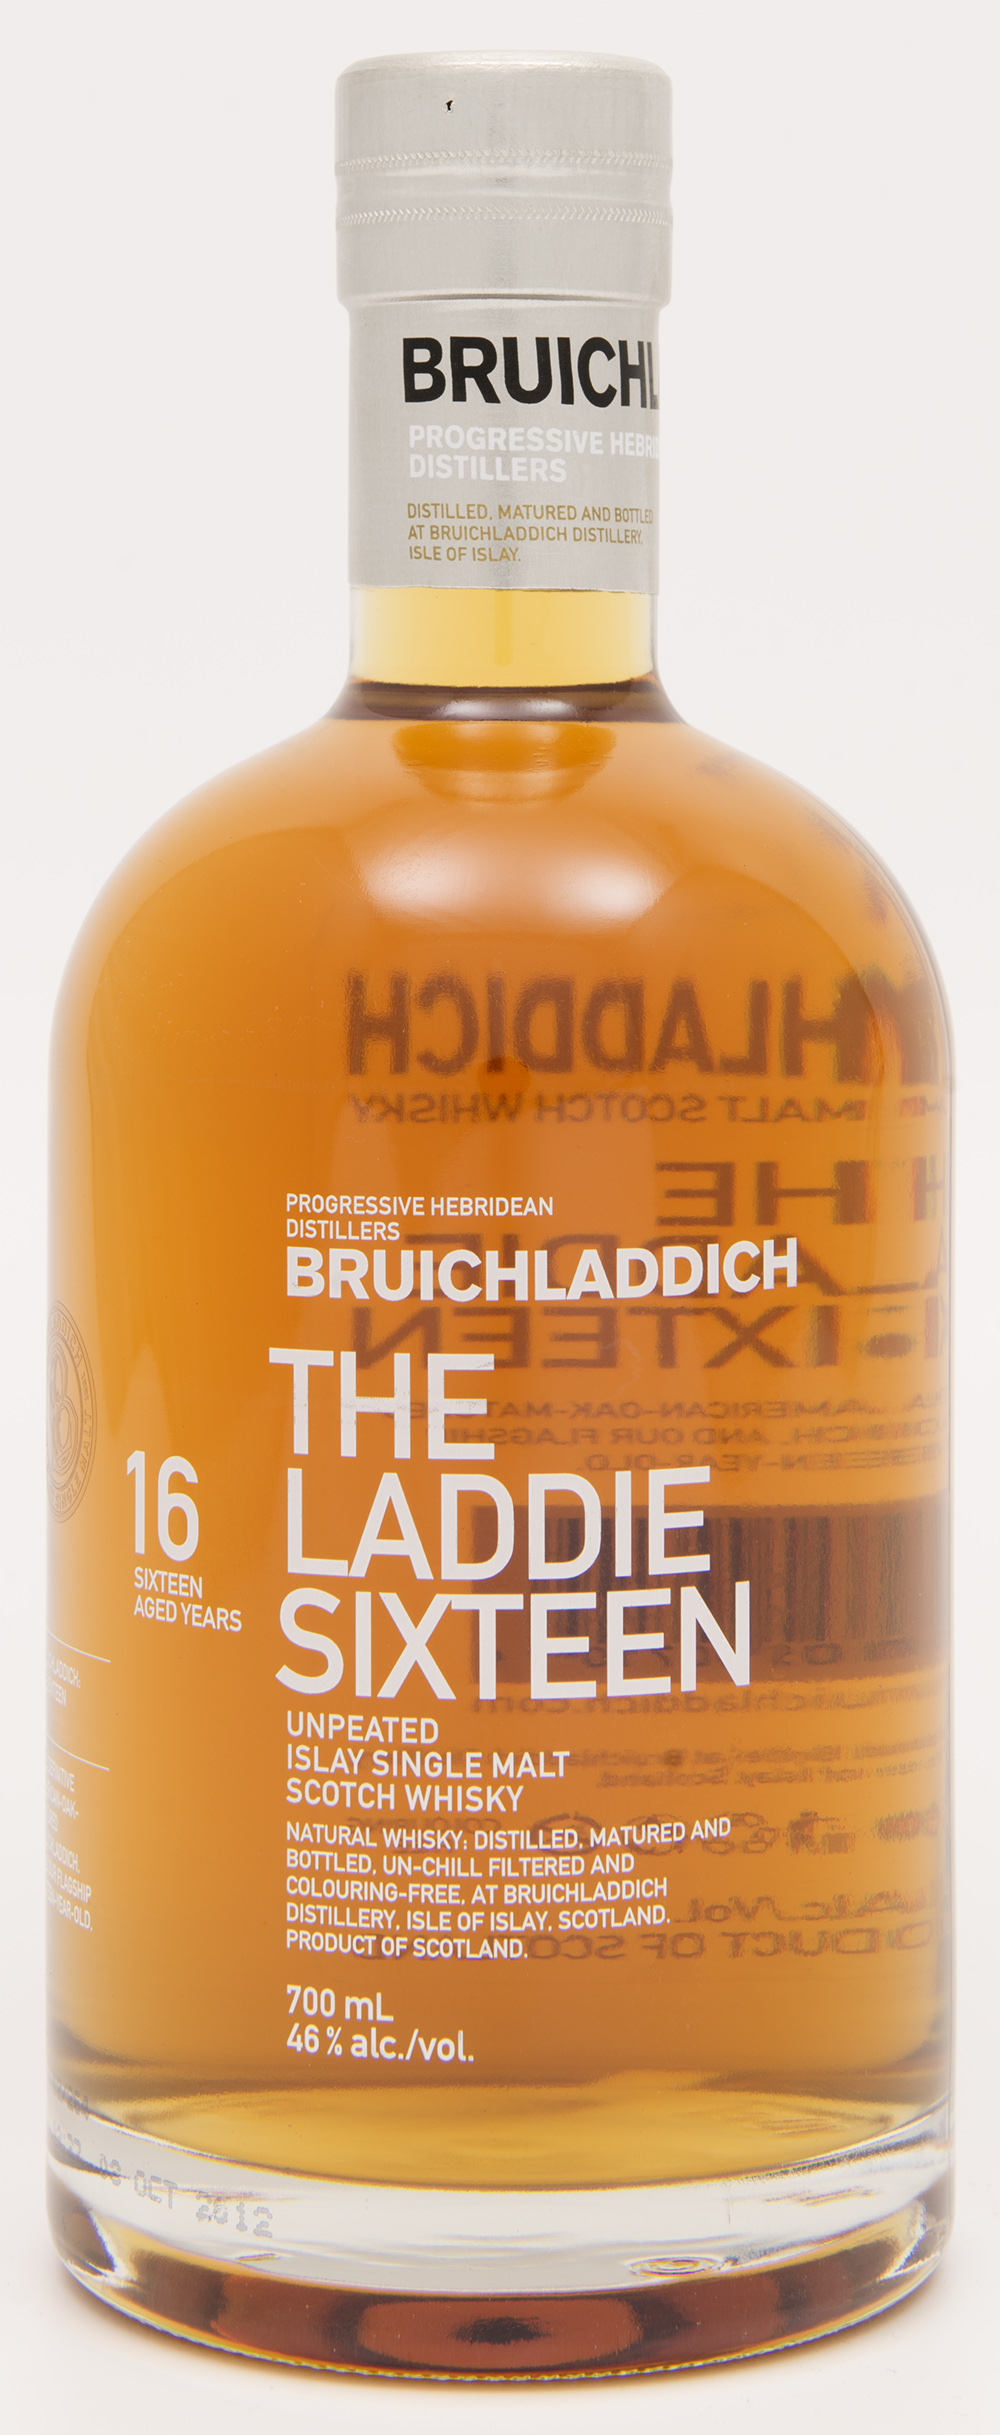 Billede: DSC_3603 The Laddie Sixteen - bottle.jpg